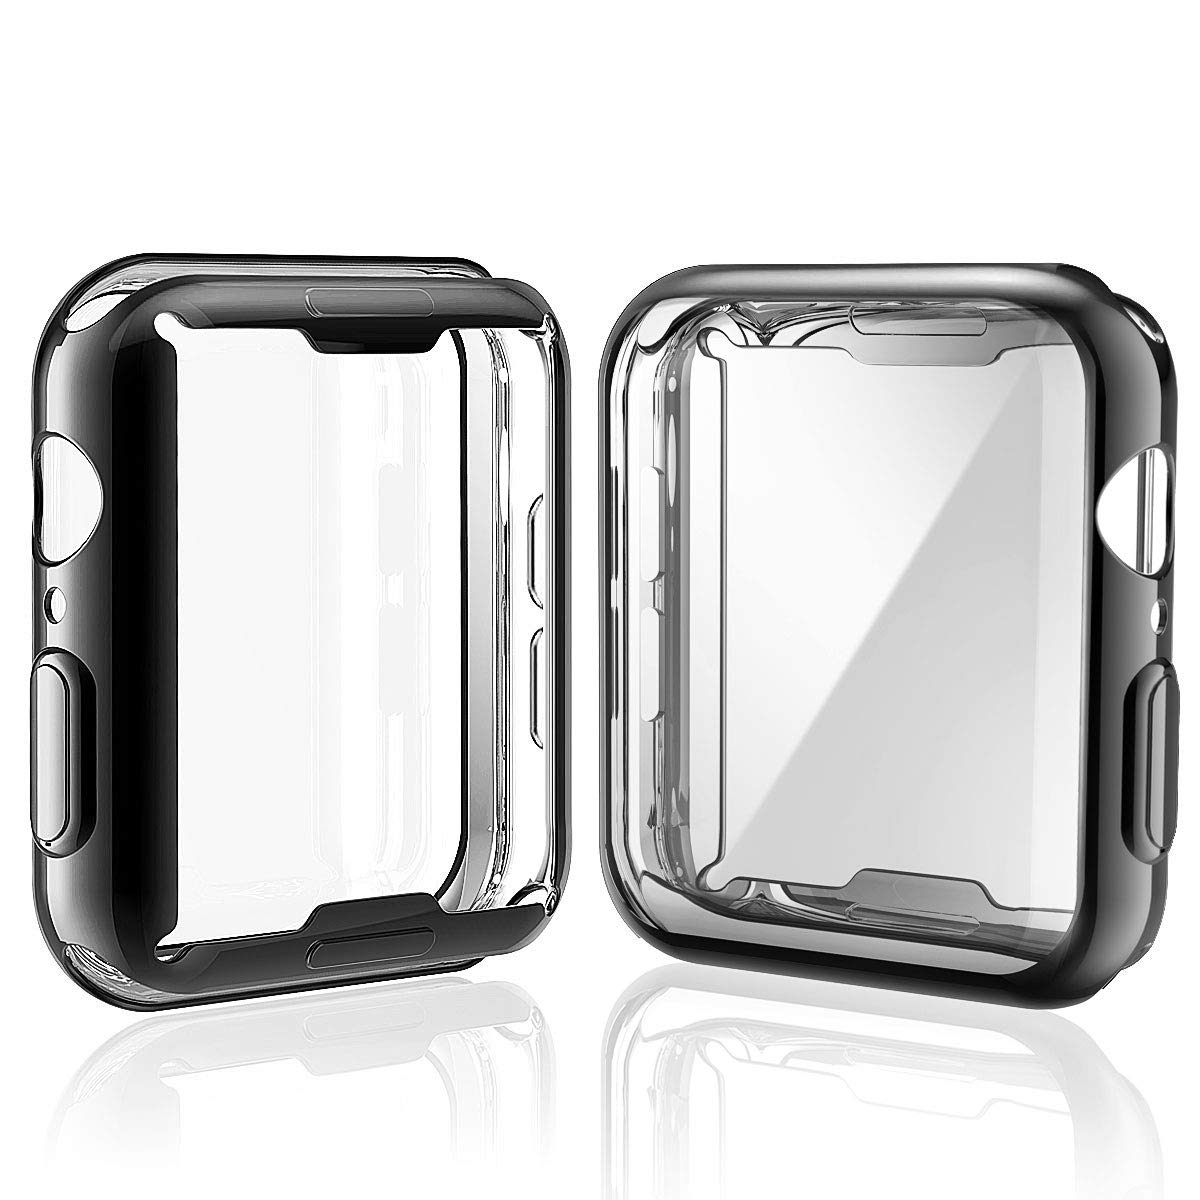 [2-Pack] Julk Case for Apple Watch Series 5 / Series 4 Screen Protector 40mm, 2019 New iWatch Overall Protective Case TPU HD Ultra-Thin Cover for ...